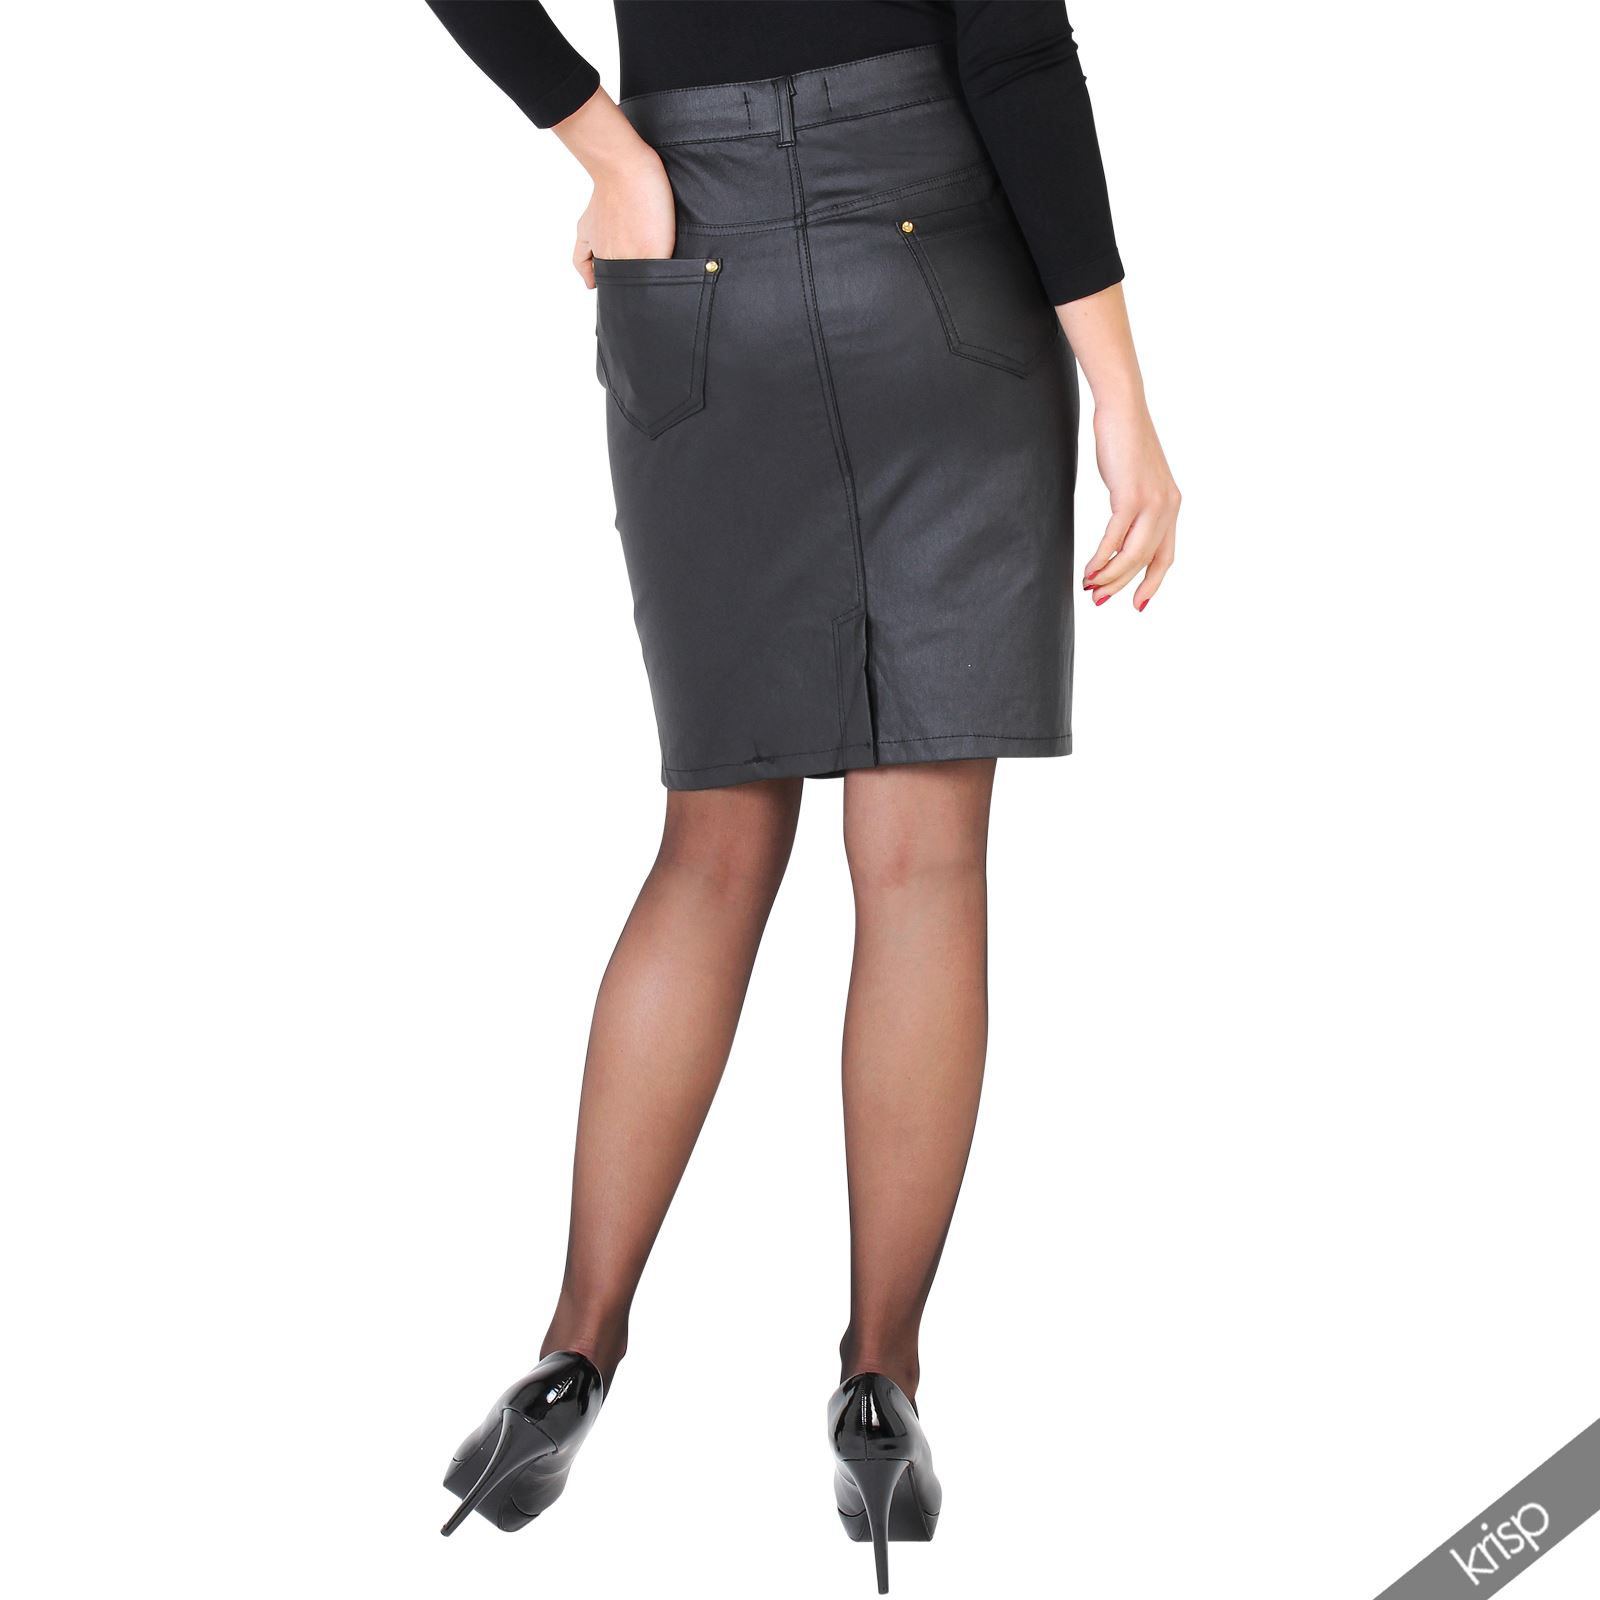 Womens-Ladies-Leather-Pencil-Skirt-Sexy-Wet-Look-Stretch-PU-Mini-Midi-Bodycon thumbnail 7